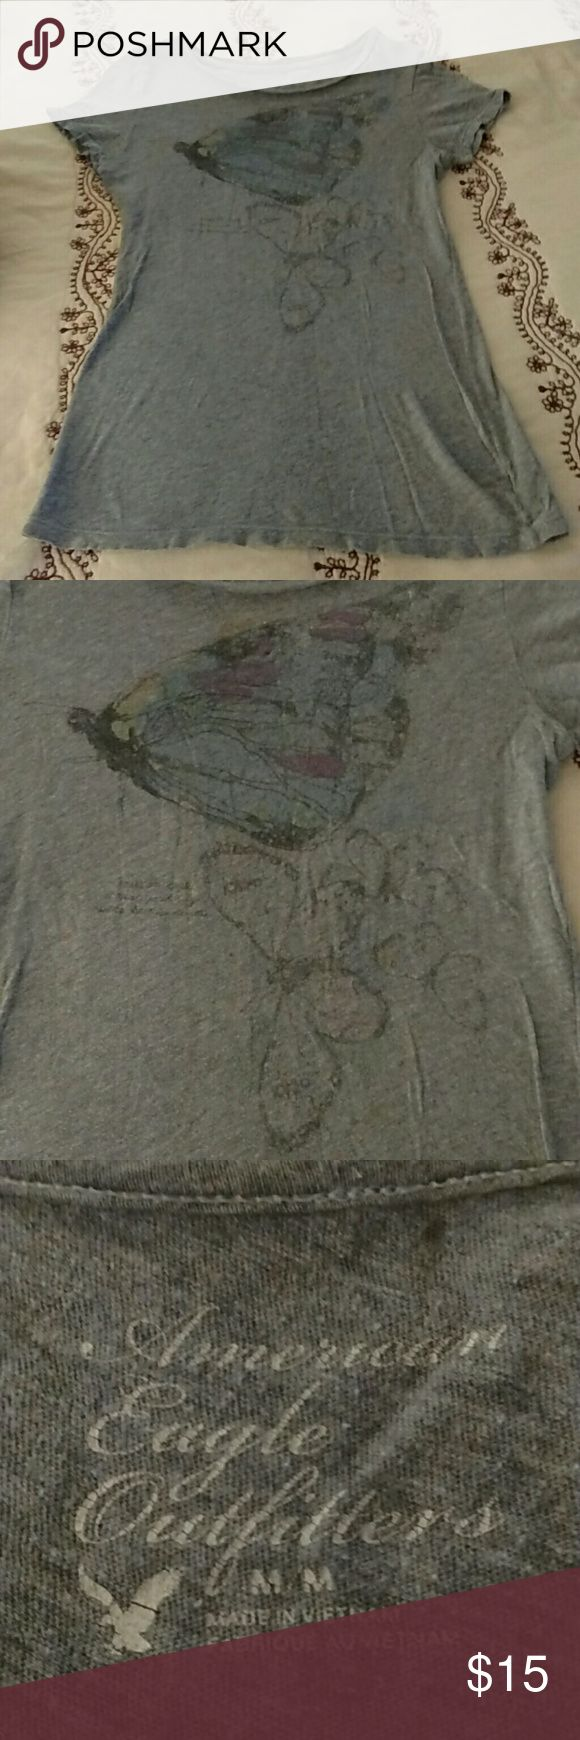 American Eagle gray butterfly tee shirt: M American Eagle Outfitters fitted gray butterfly tee shirt!! Vintage look!! Perfect condition!! American Eagle Outfitters Tops Tees - Short Sleeve